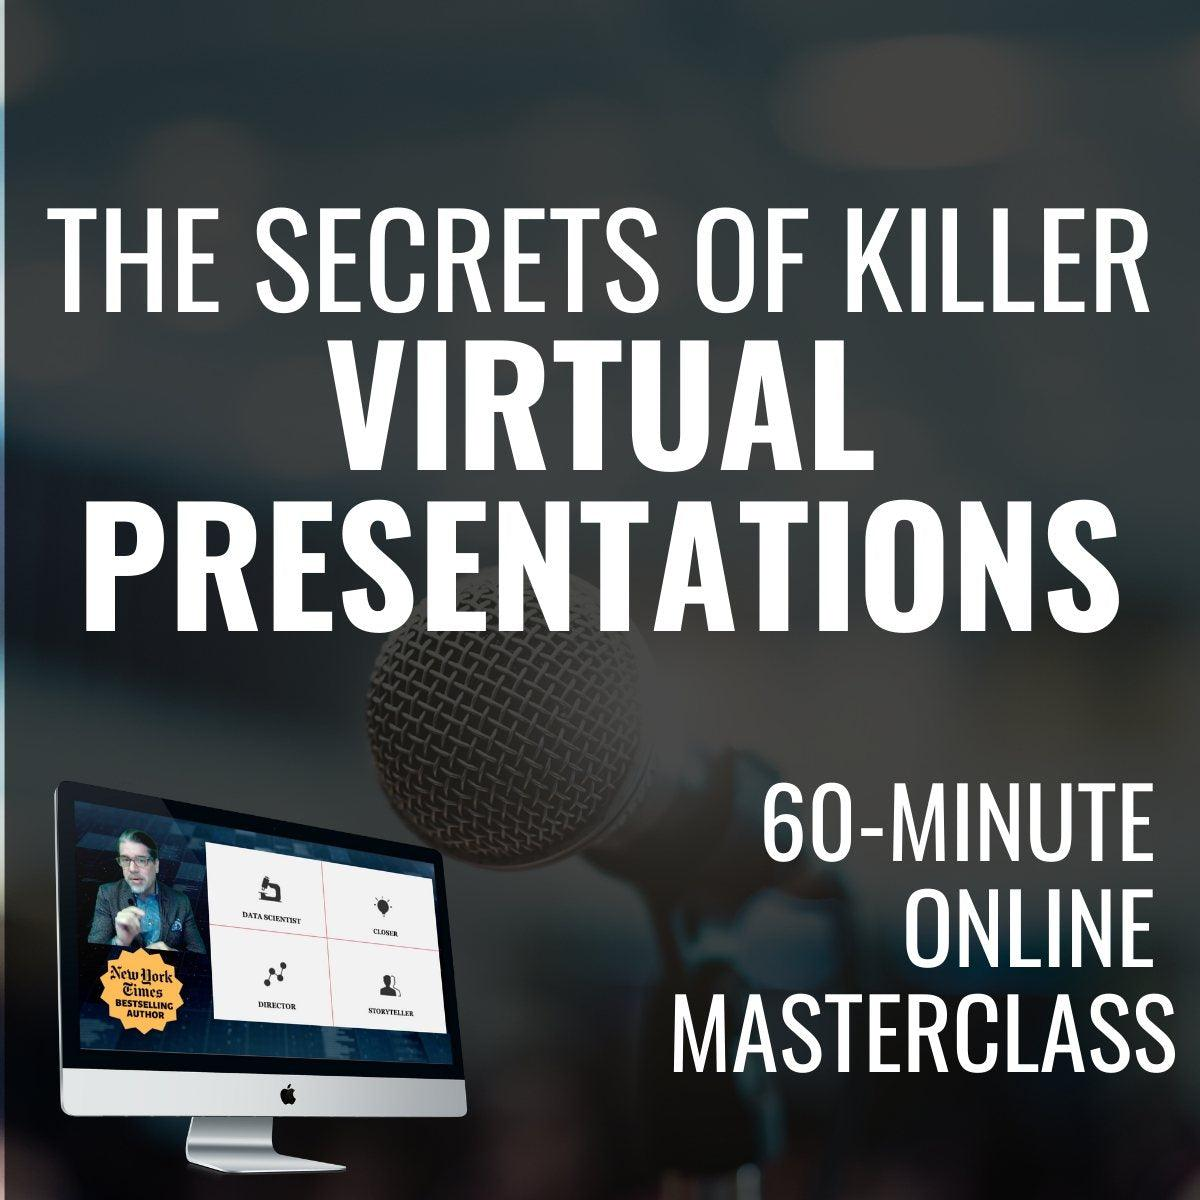 The Secrets Of Killer Virtual Presentations [JANUARY 15TH, 1-2 PM EASTERN]